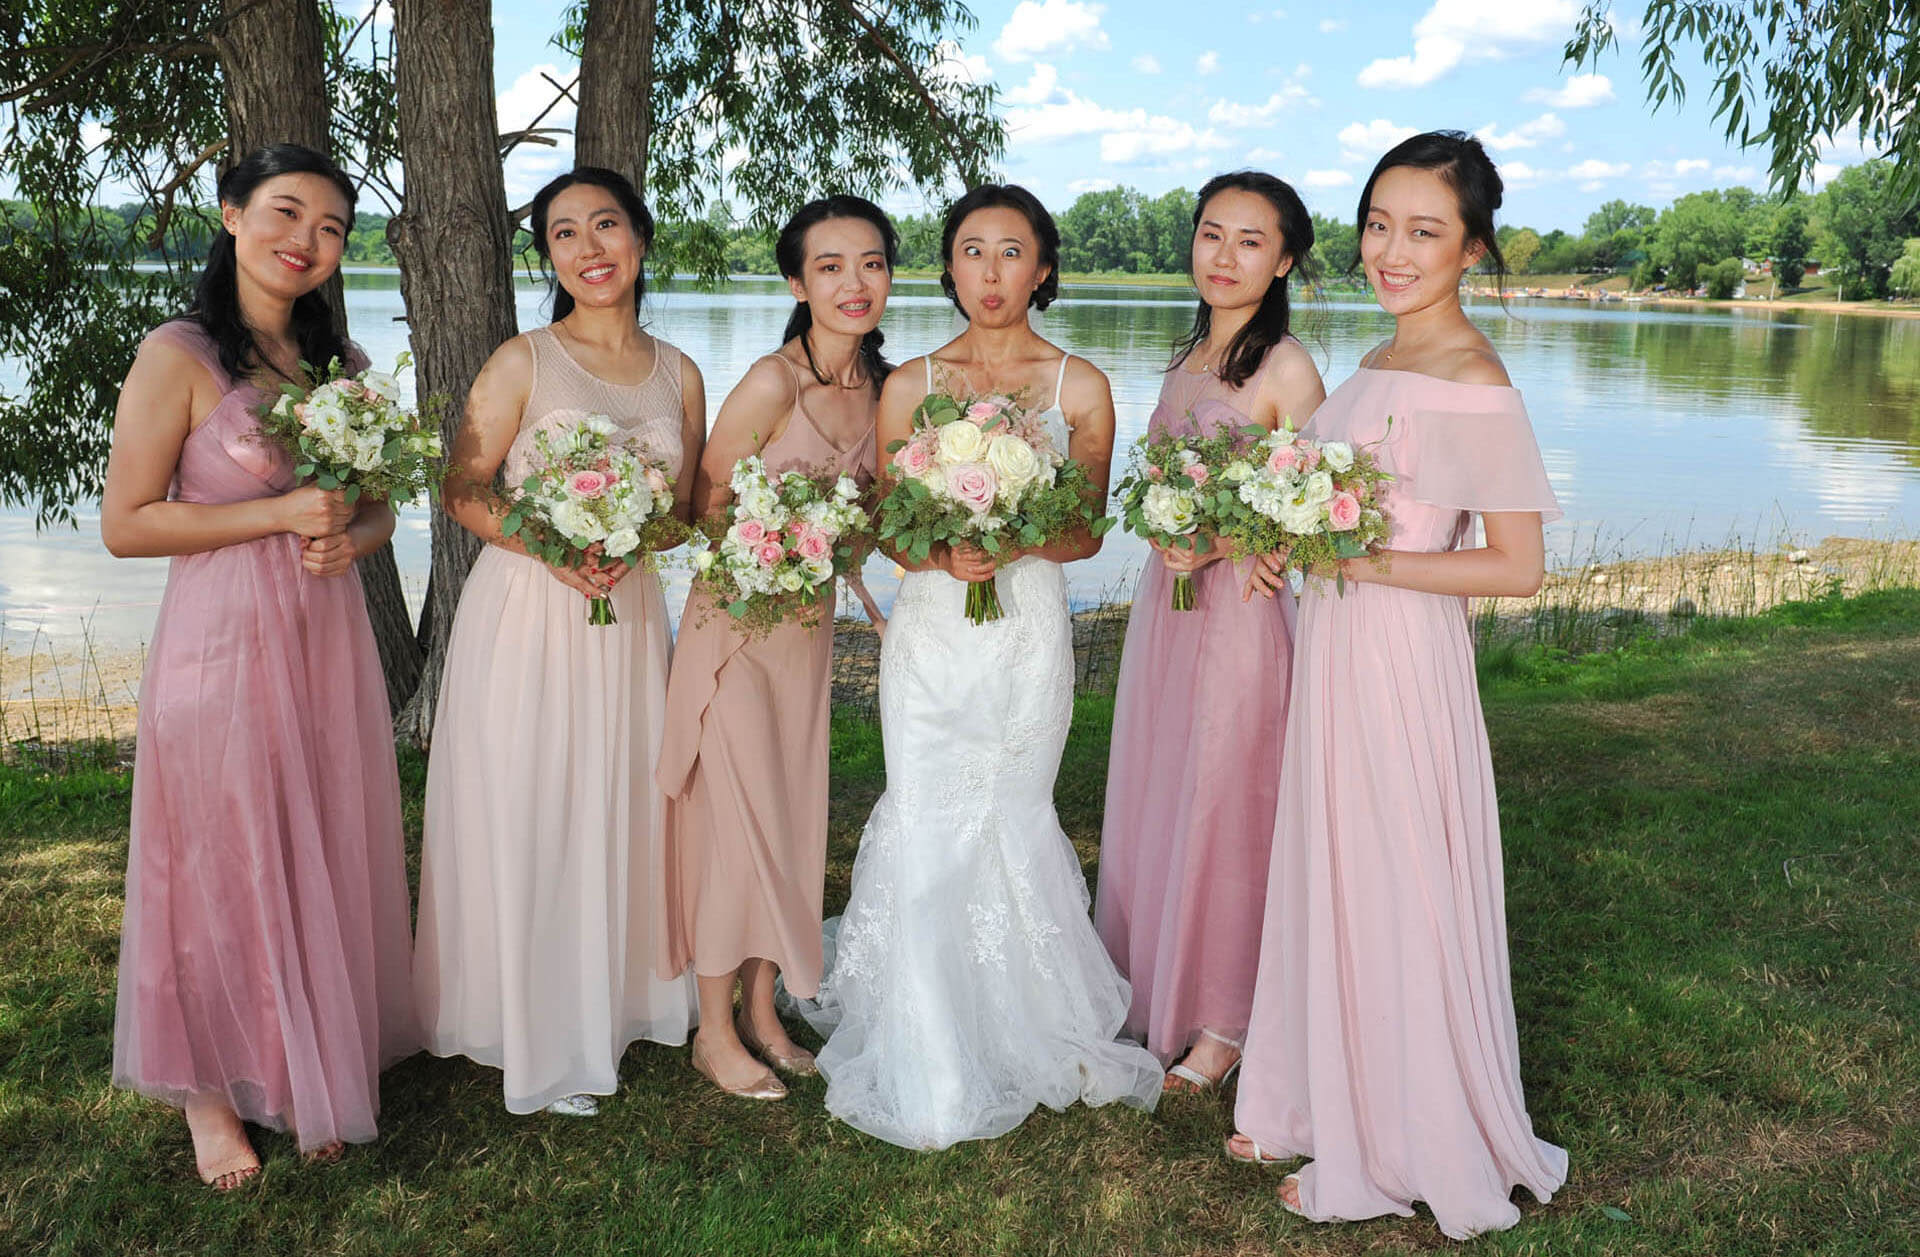 The bride played a prank on her bridesmaids while taking formal wedding photos at the Waldenwoods Resort in Hartland, Michigan.